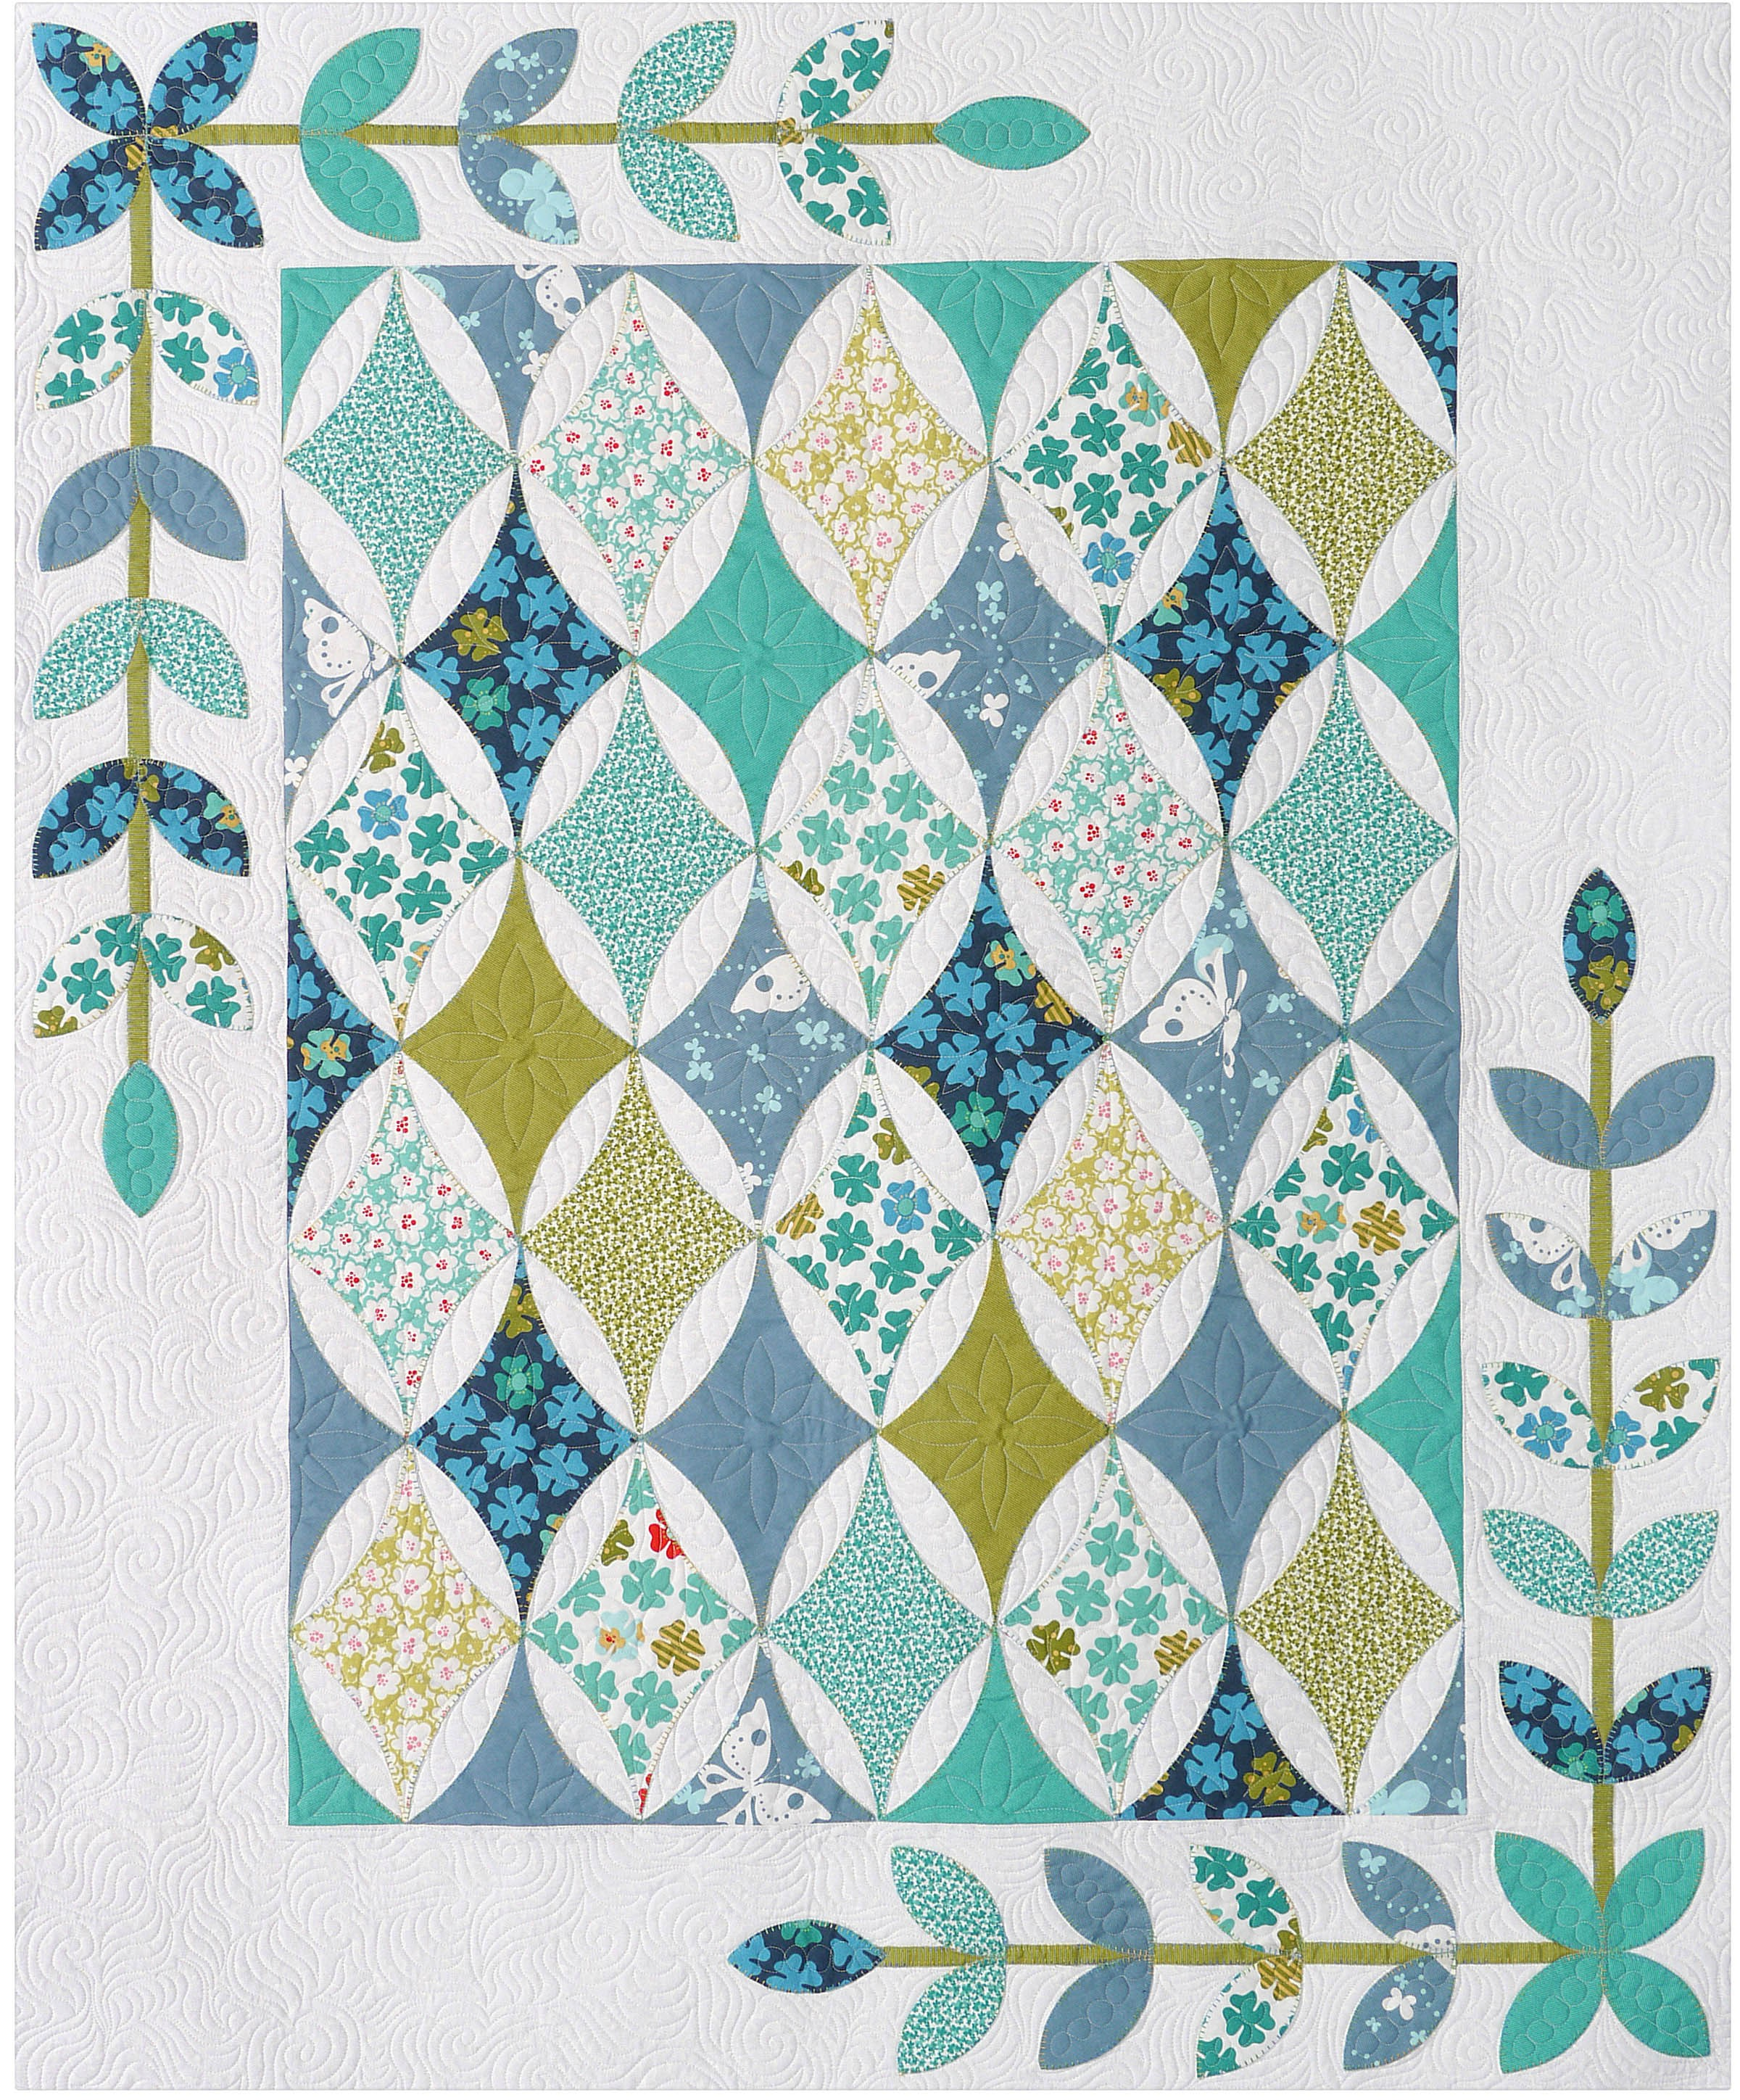 Hope S Diamond Quilt Pattern By Pelland Sue